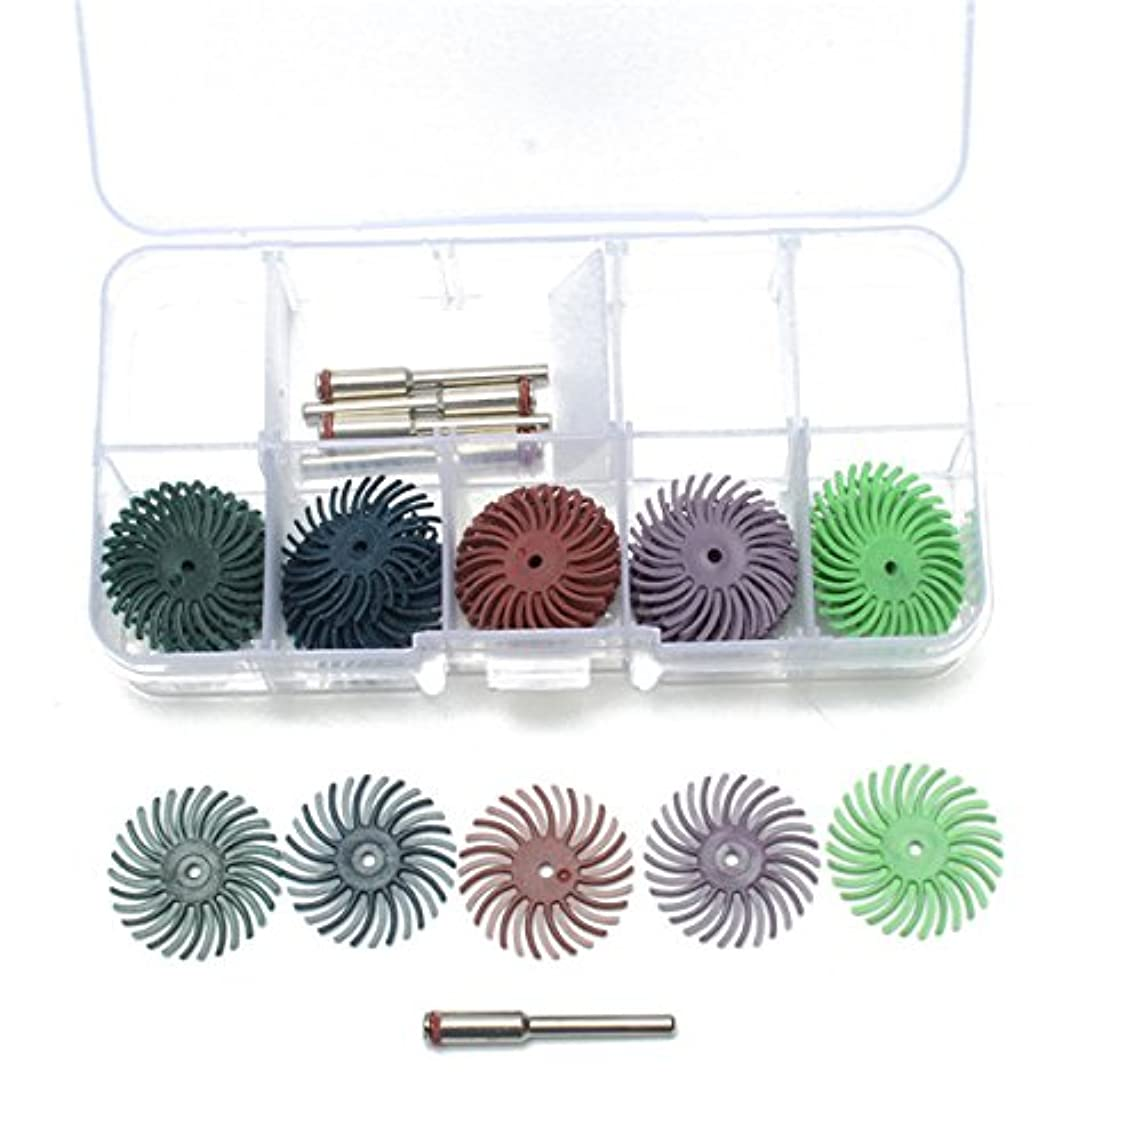 WCHAOEN 30pcs 25mm Radial Bristle Disc Brushes 80-1000 Grit with 5pcs Mandrel Rotary Adapter Accessories Tool